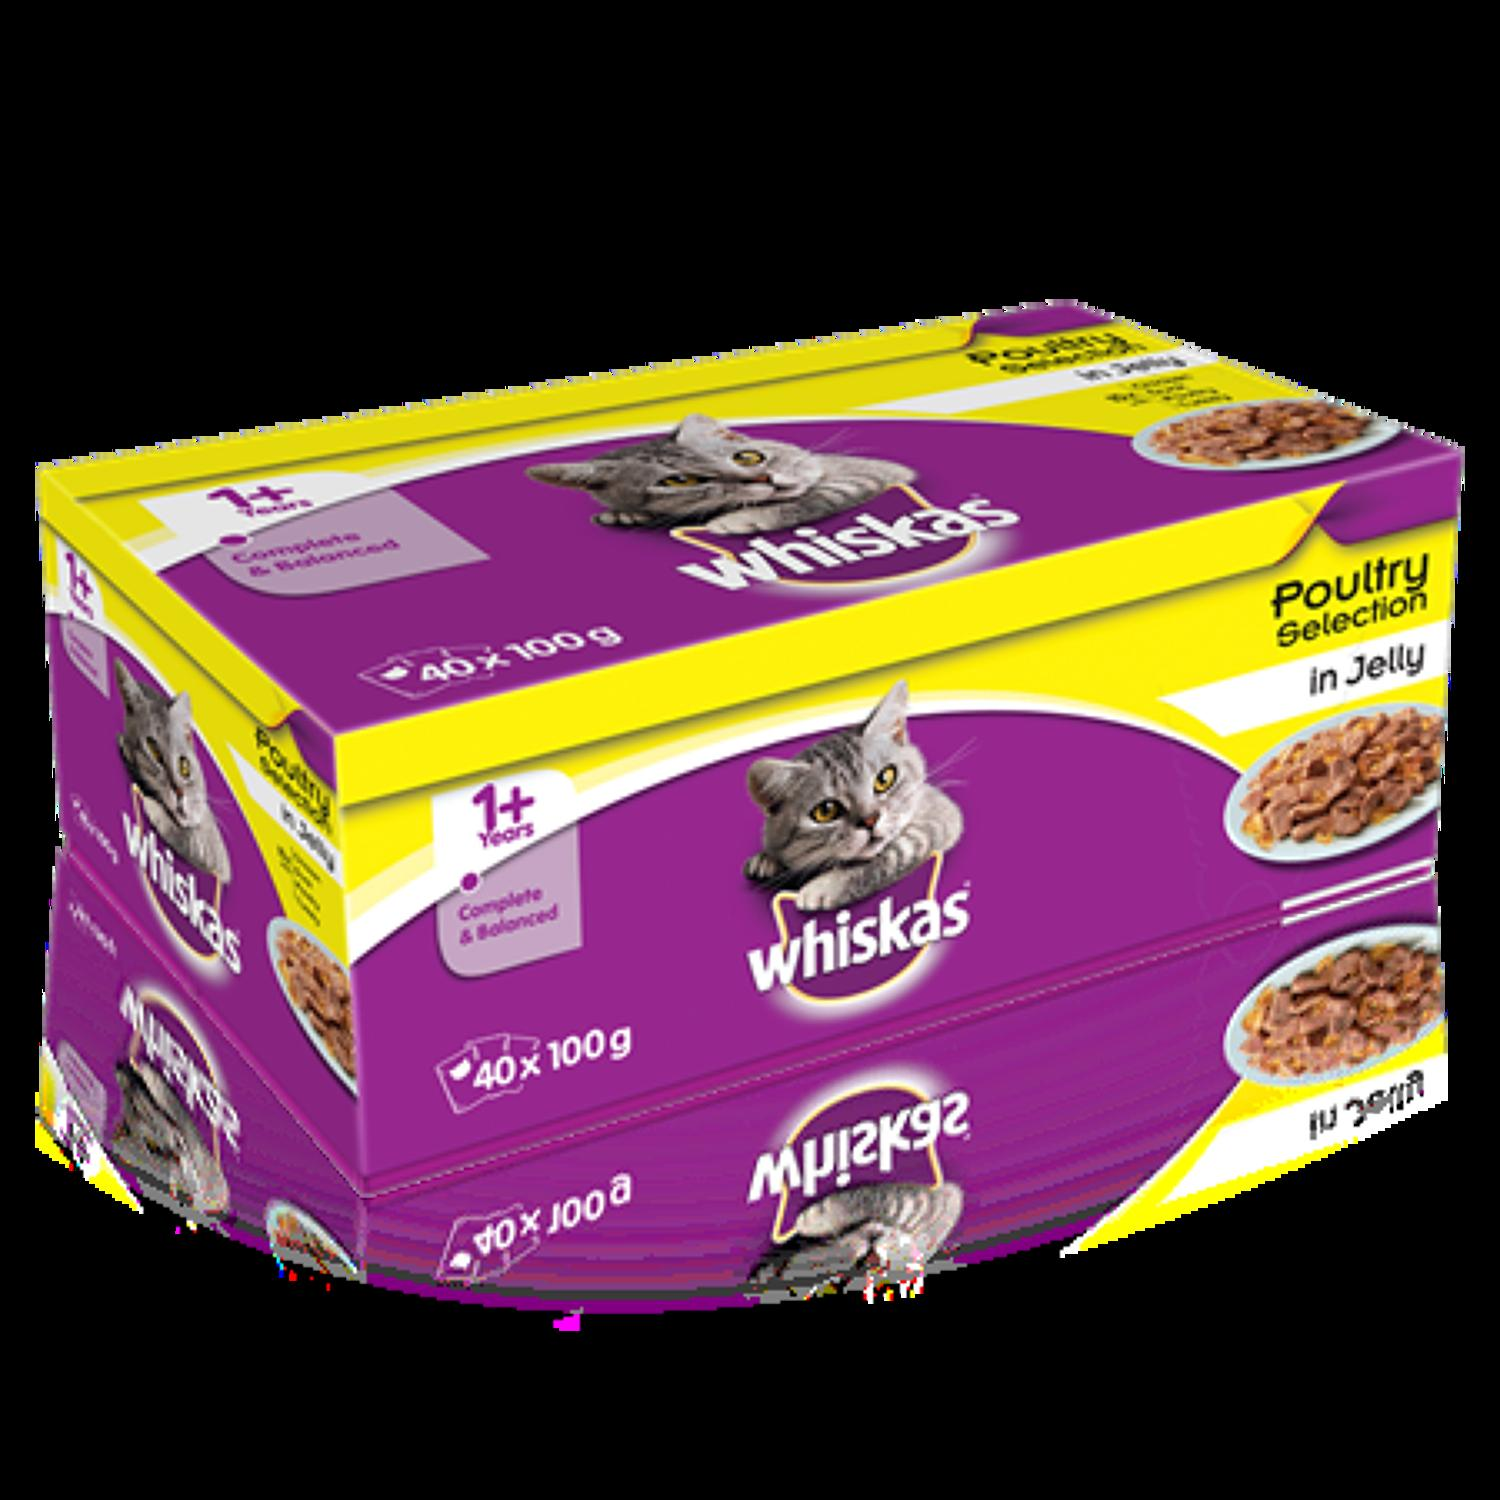 Whiskas 1+ Poultry in Jelly 40x100g